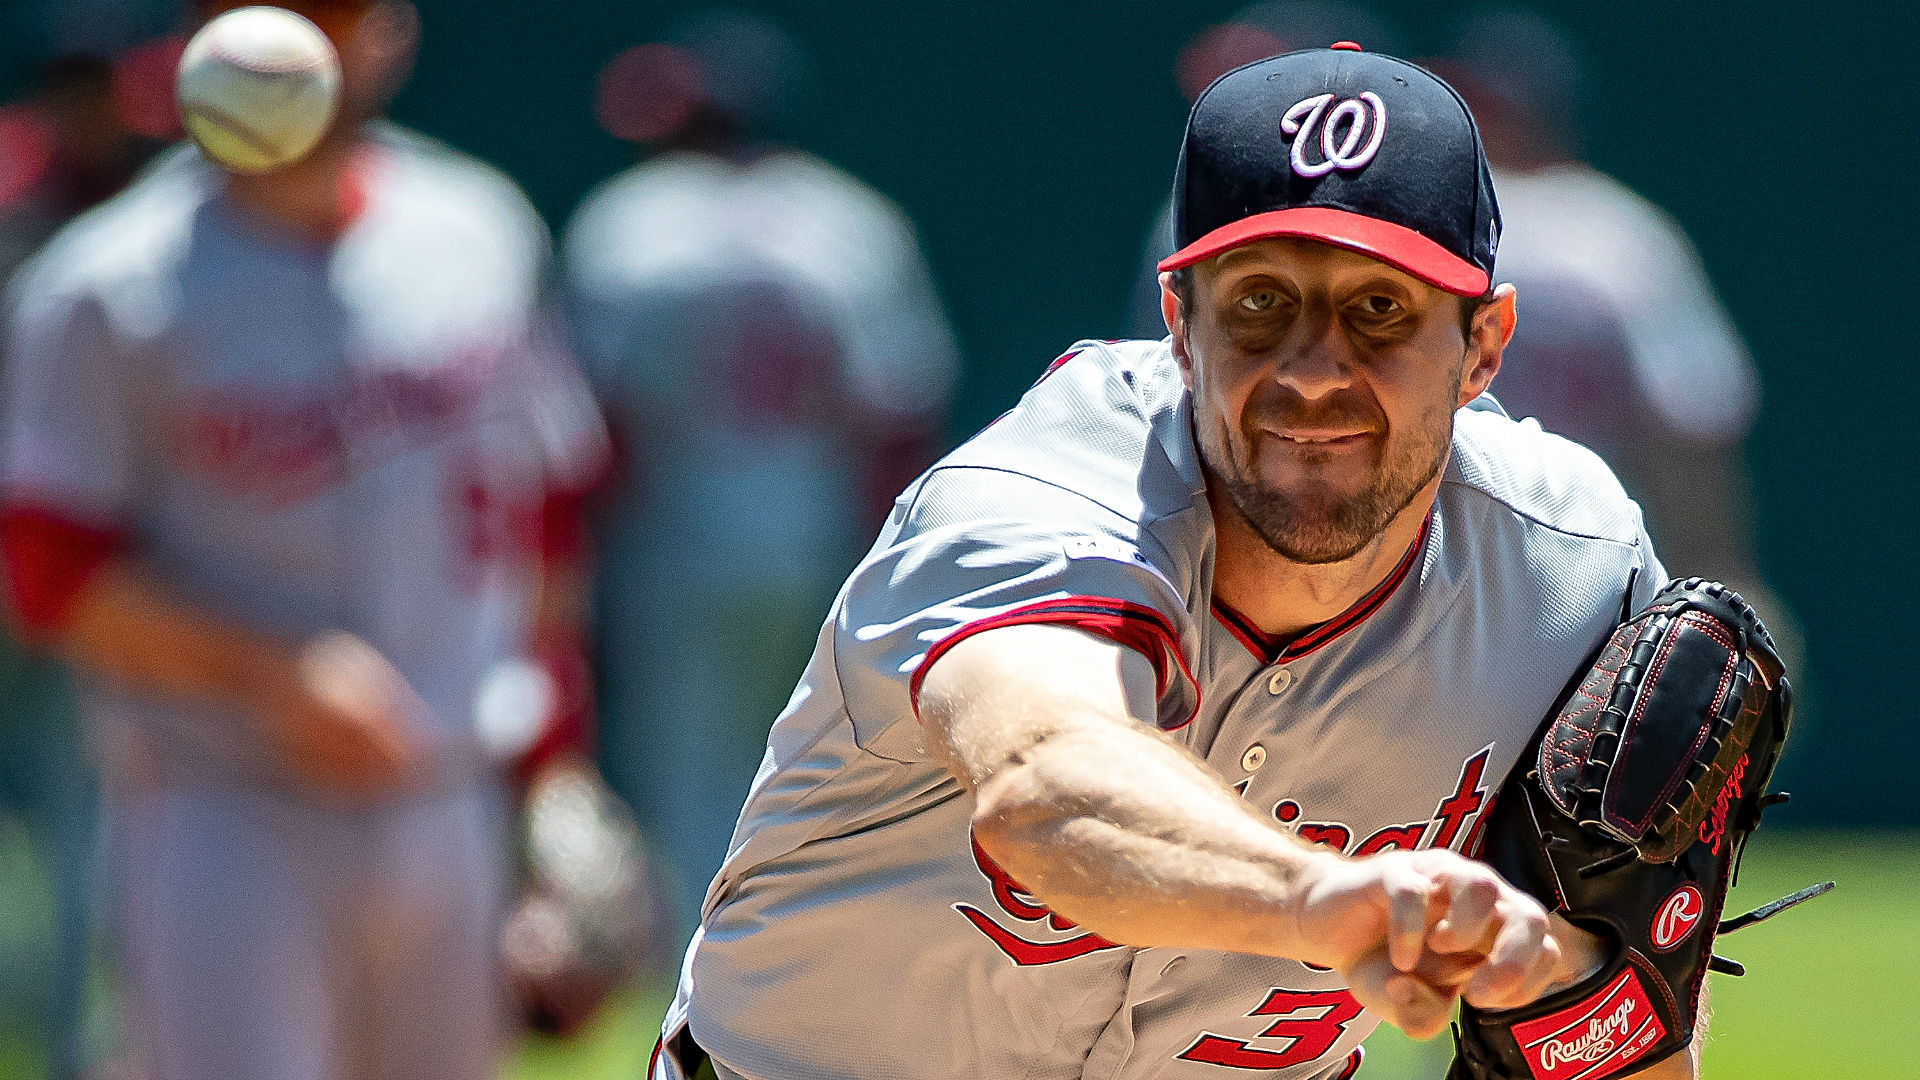 Max Scherzer injury update: Nats ace's trip to IL comes at bad time for rotation